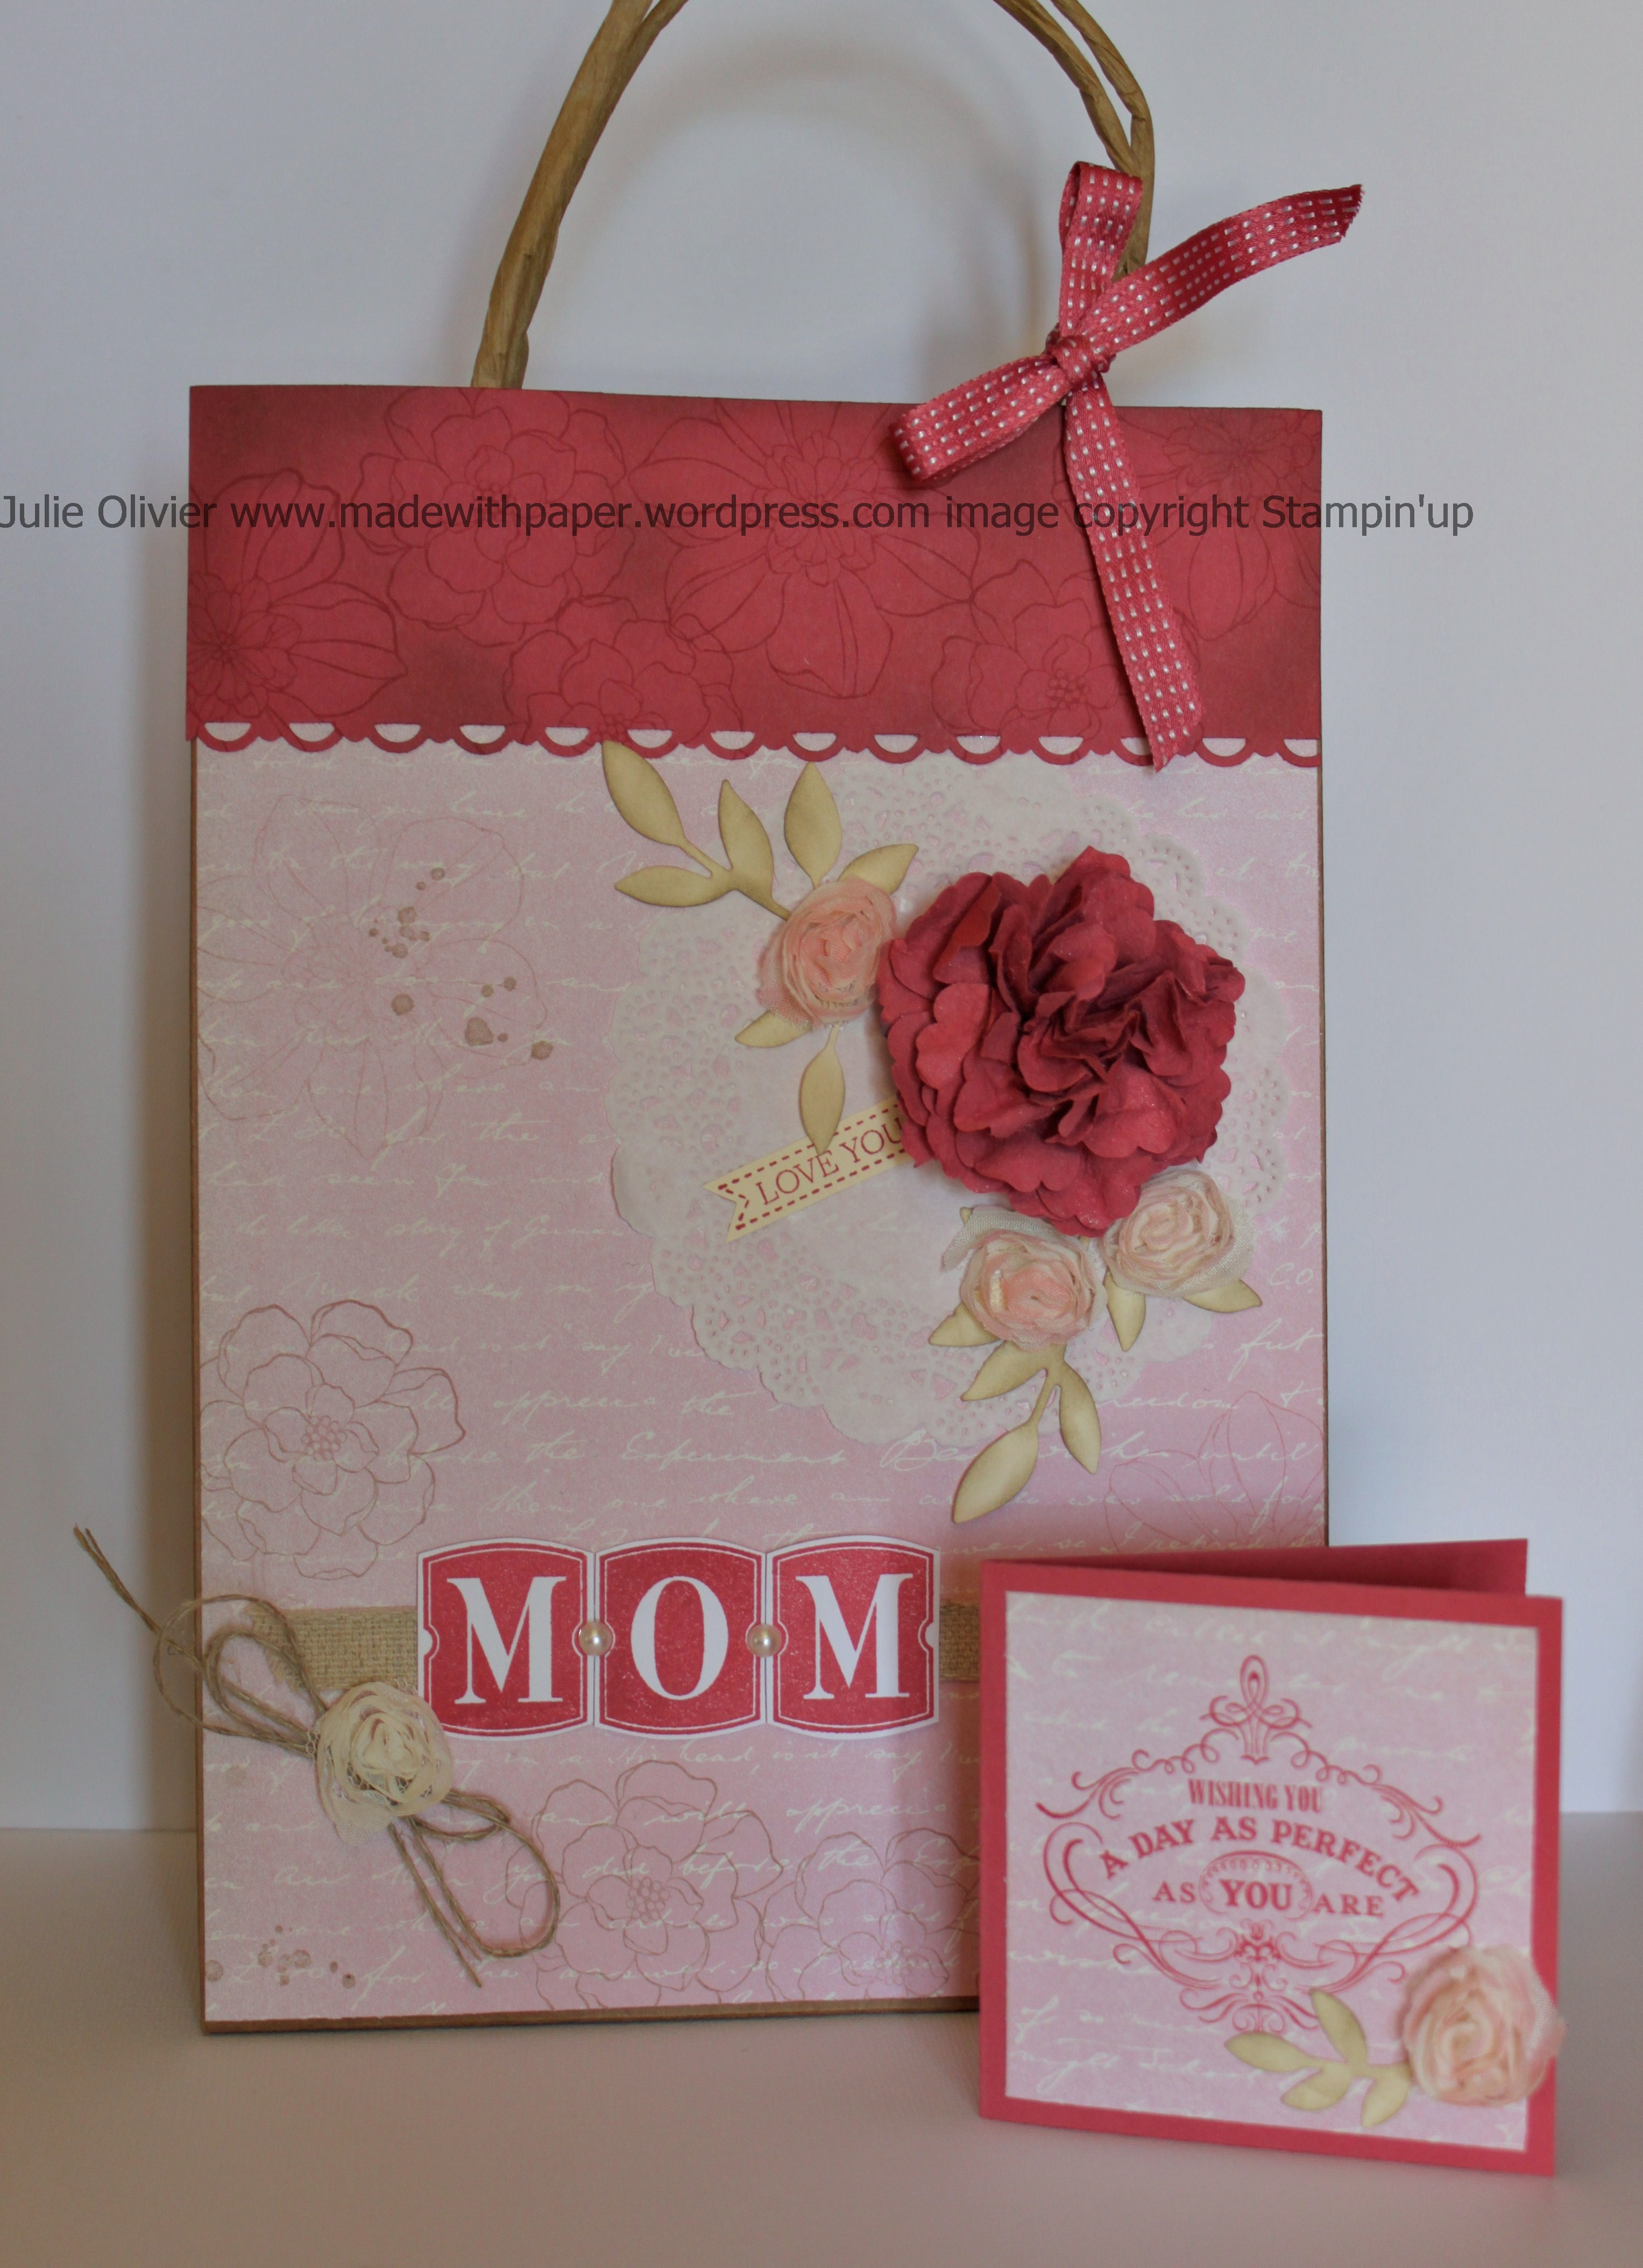 Stampinup Display Board Made With Paper